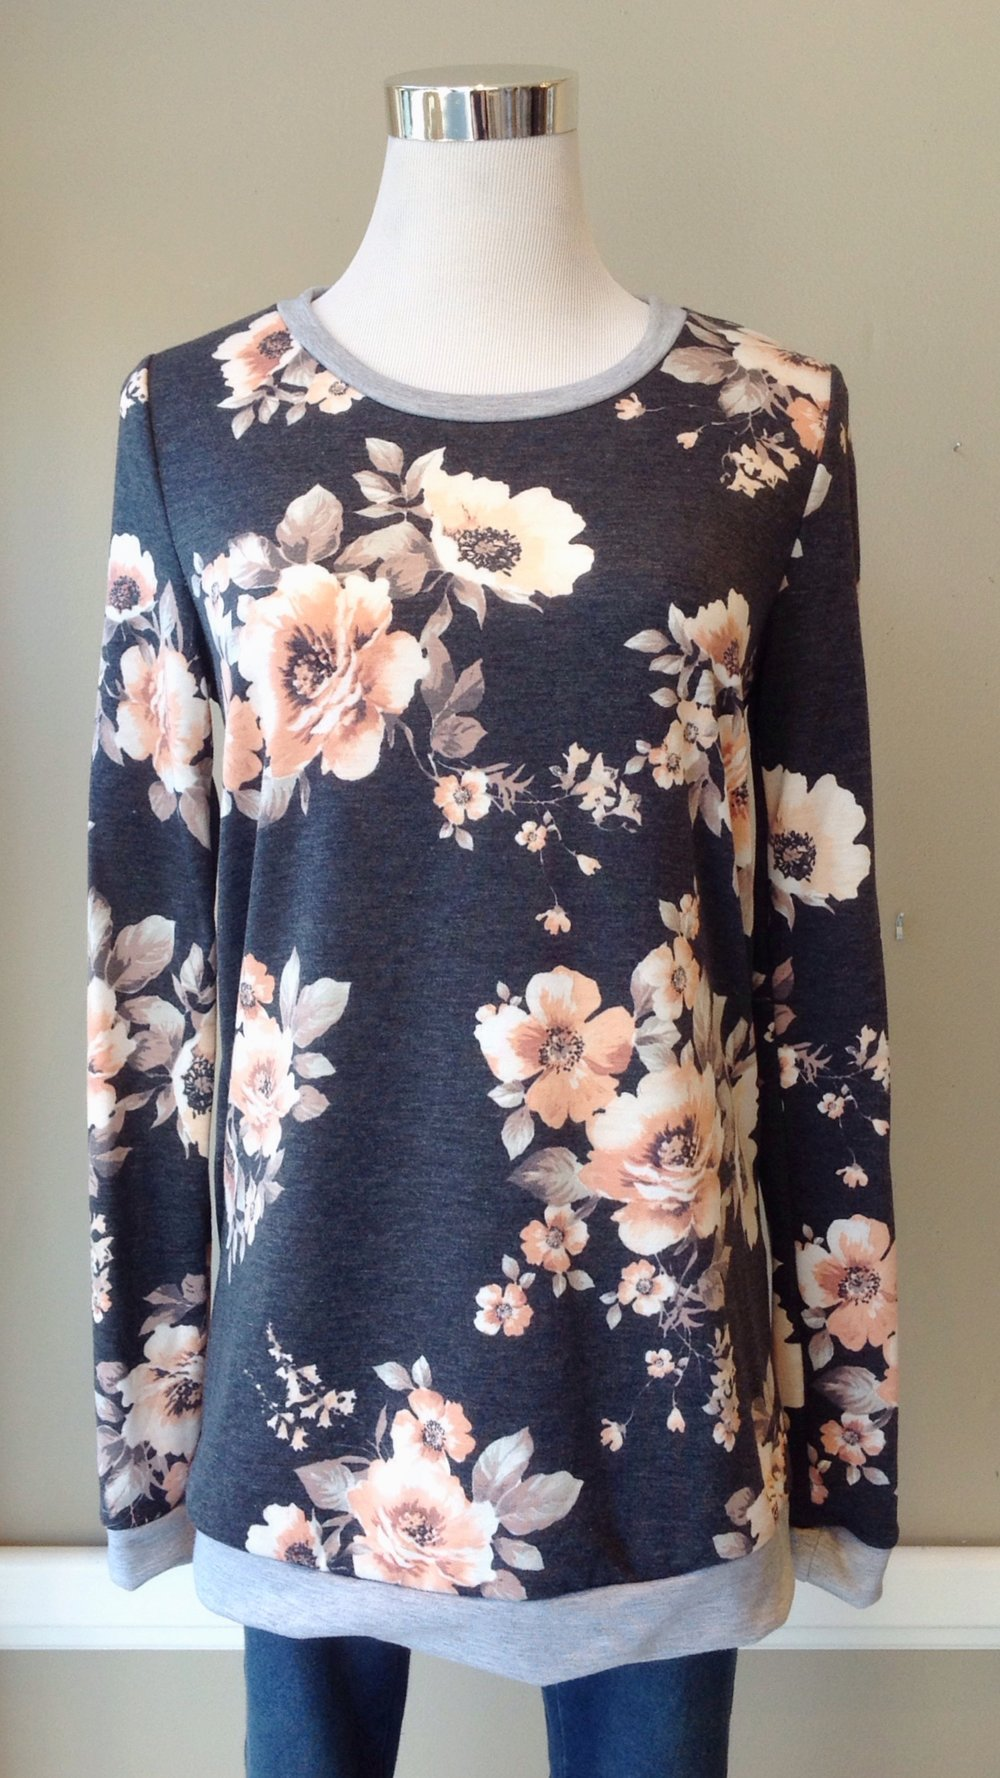 Grey and pink floral sweatshirt, $32